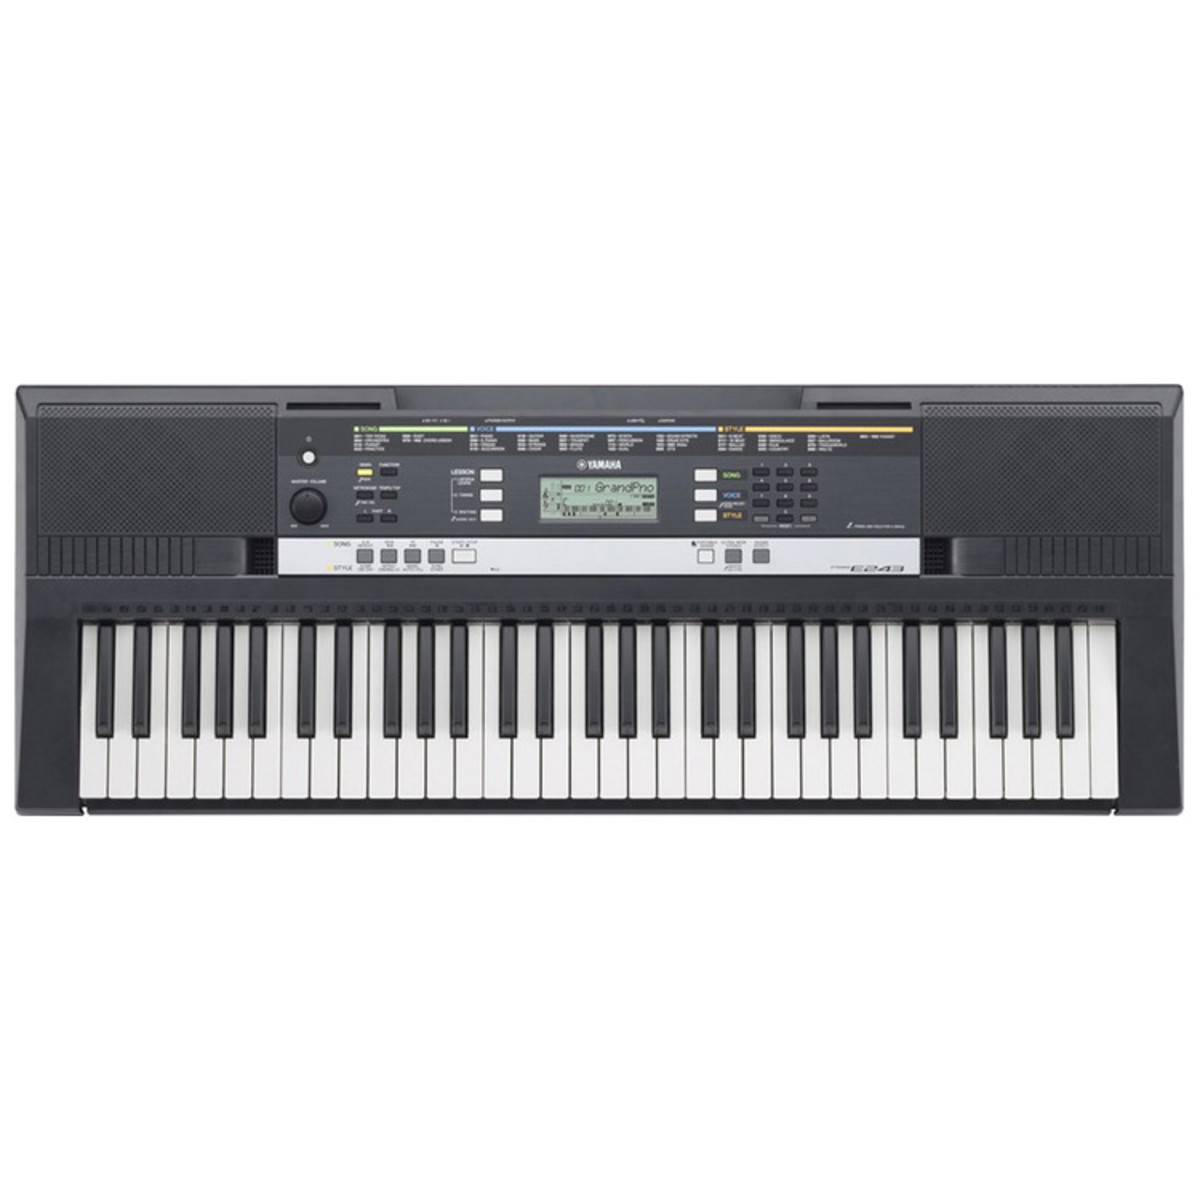 Yamaha psre243 tragbares keyboard mit st nder bank und for Yamaha credit application